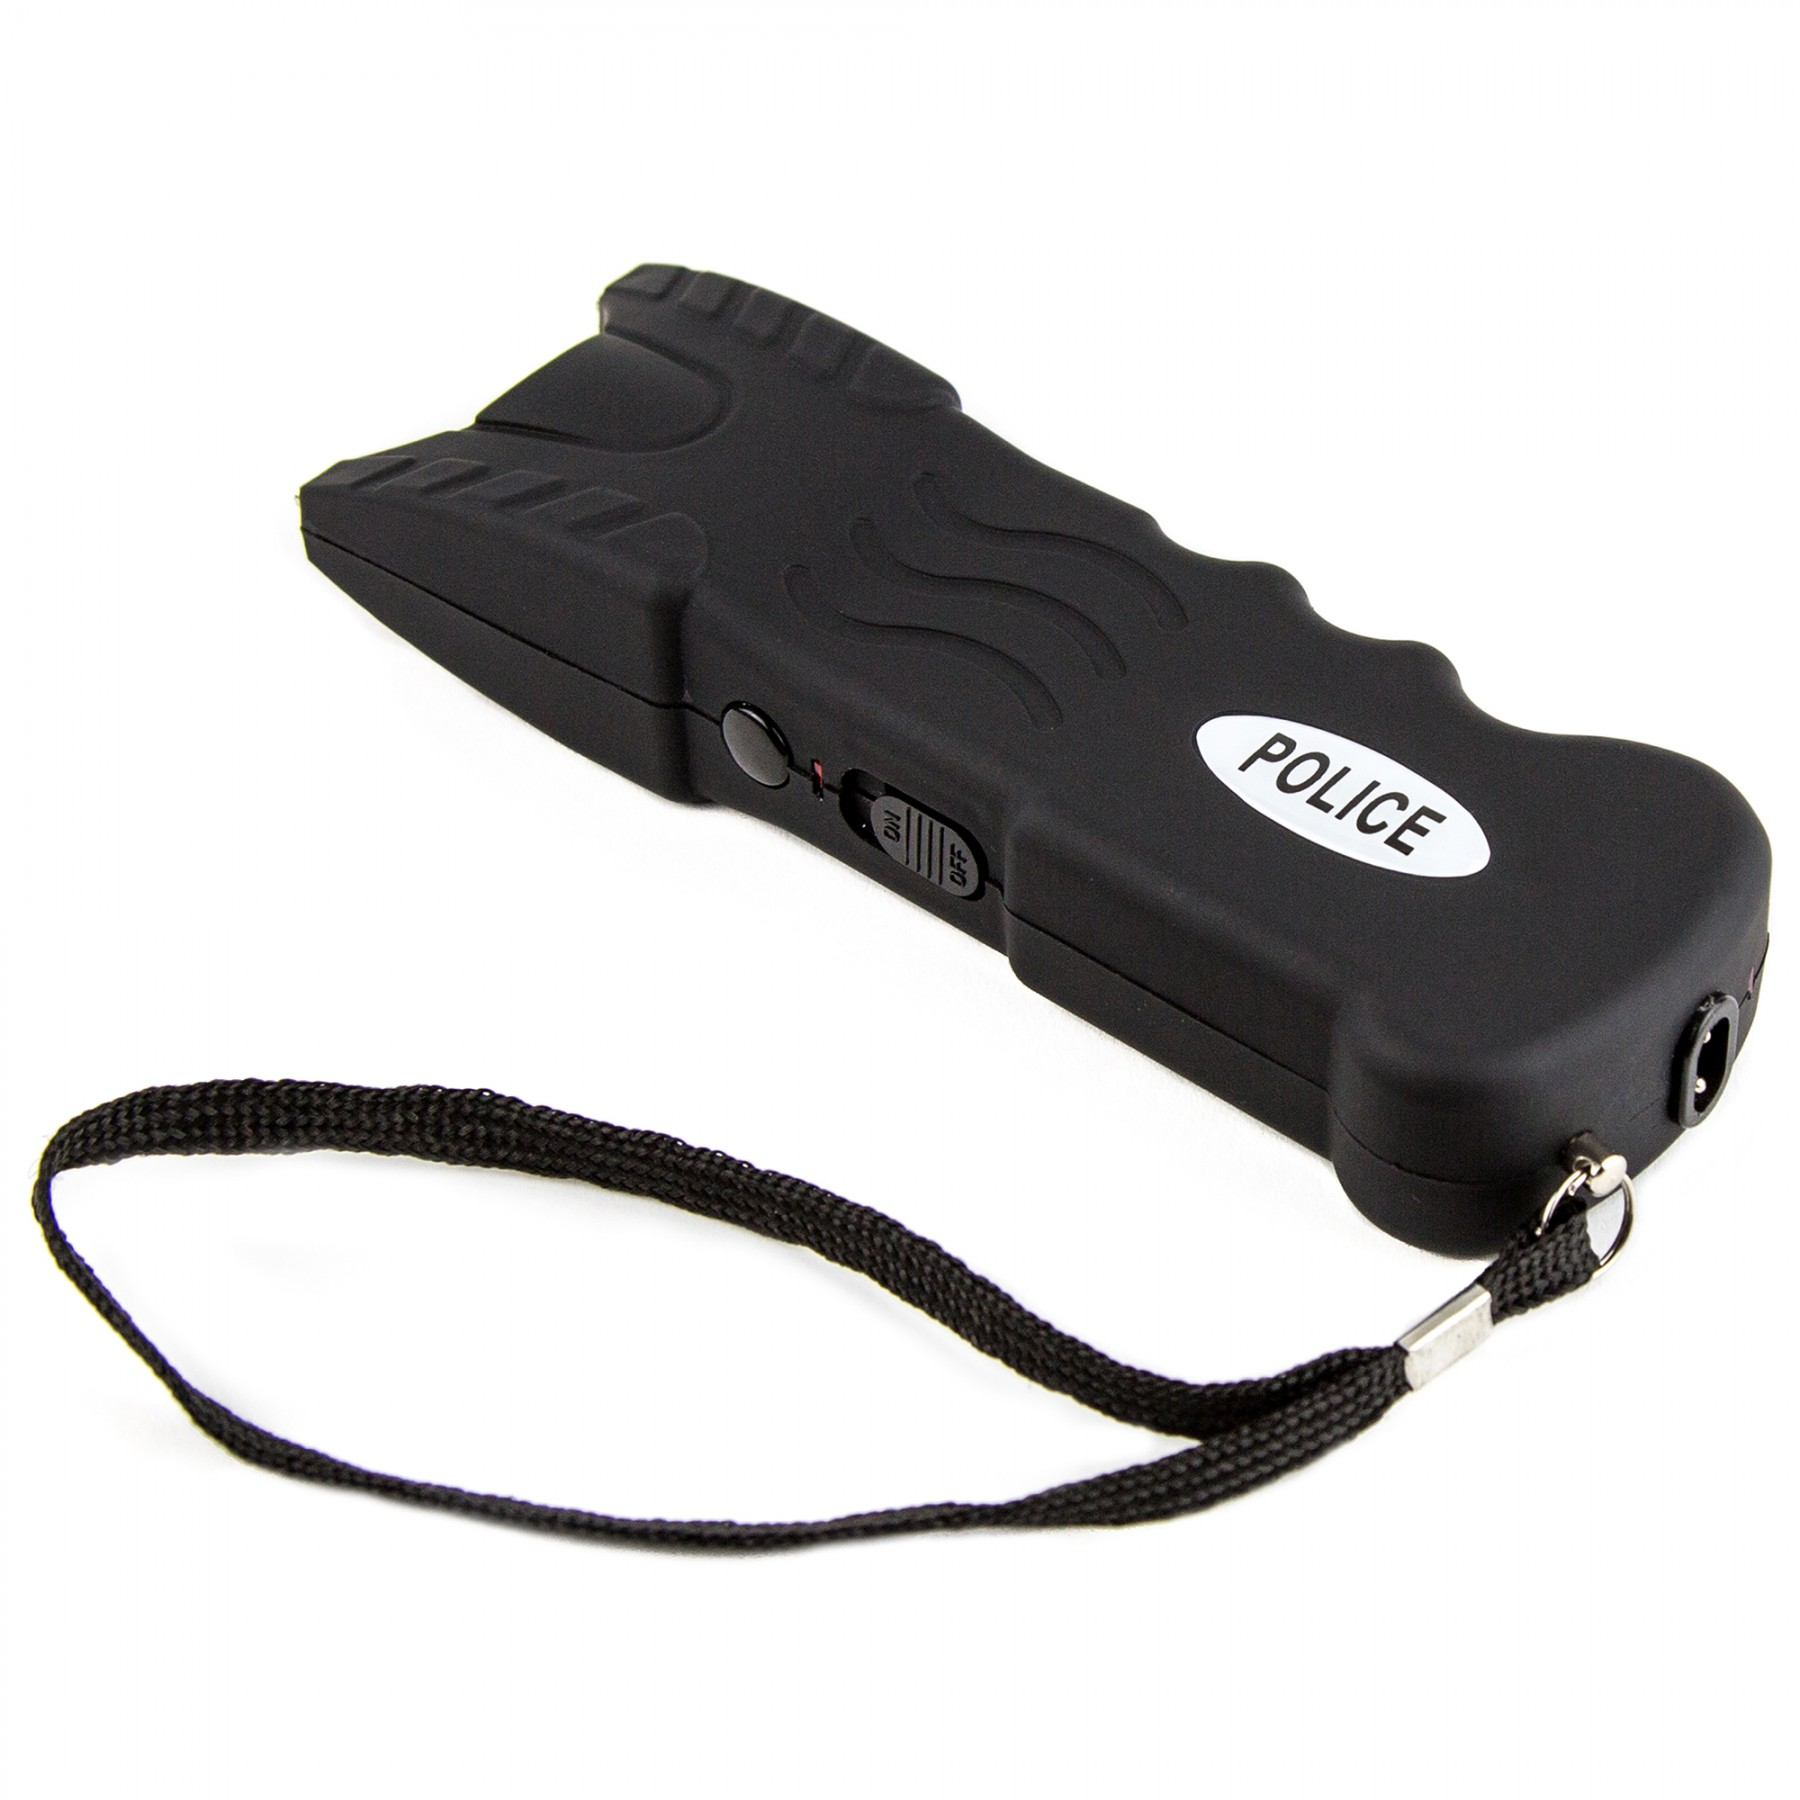 Black Heavy Duty Stun Gun Police 916 With Safety Disable Pin Led Flashlight Schematic Diagram Policemart Self Defense Equipment For Sale